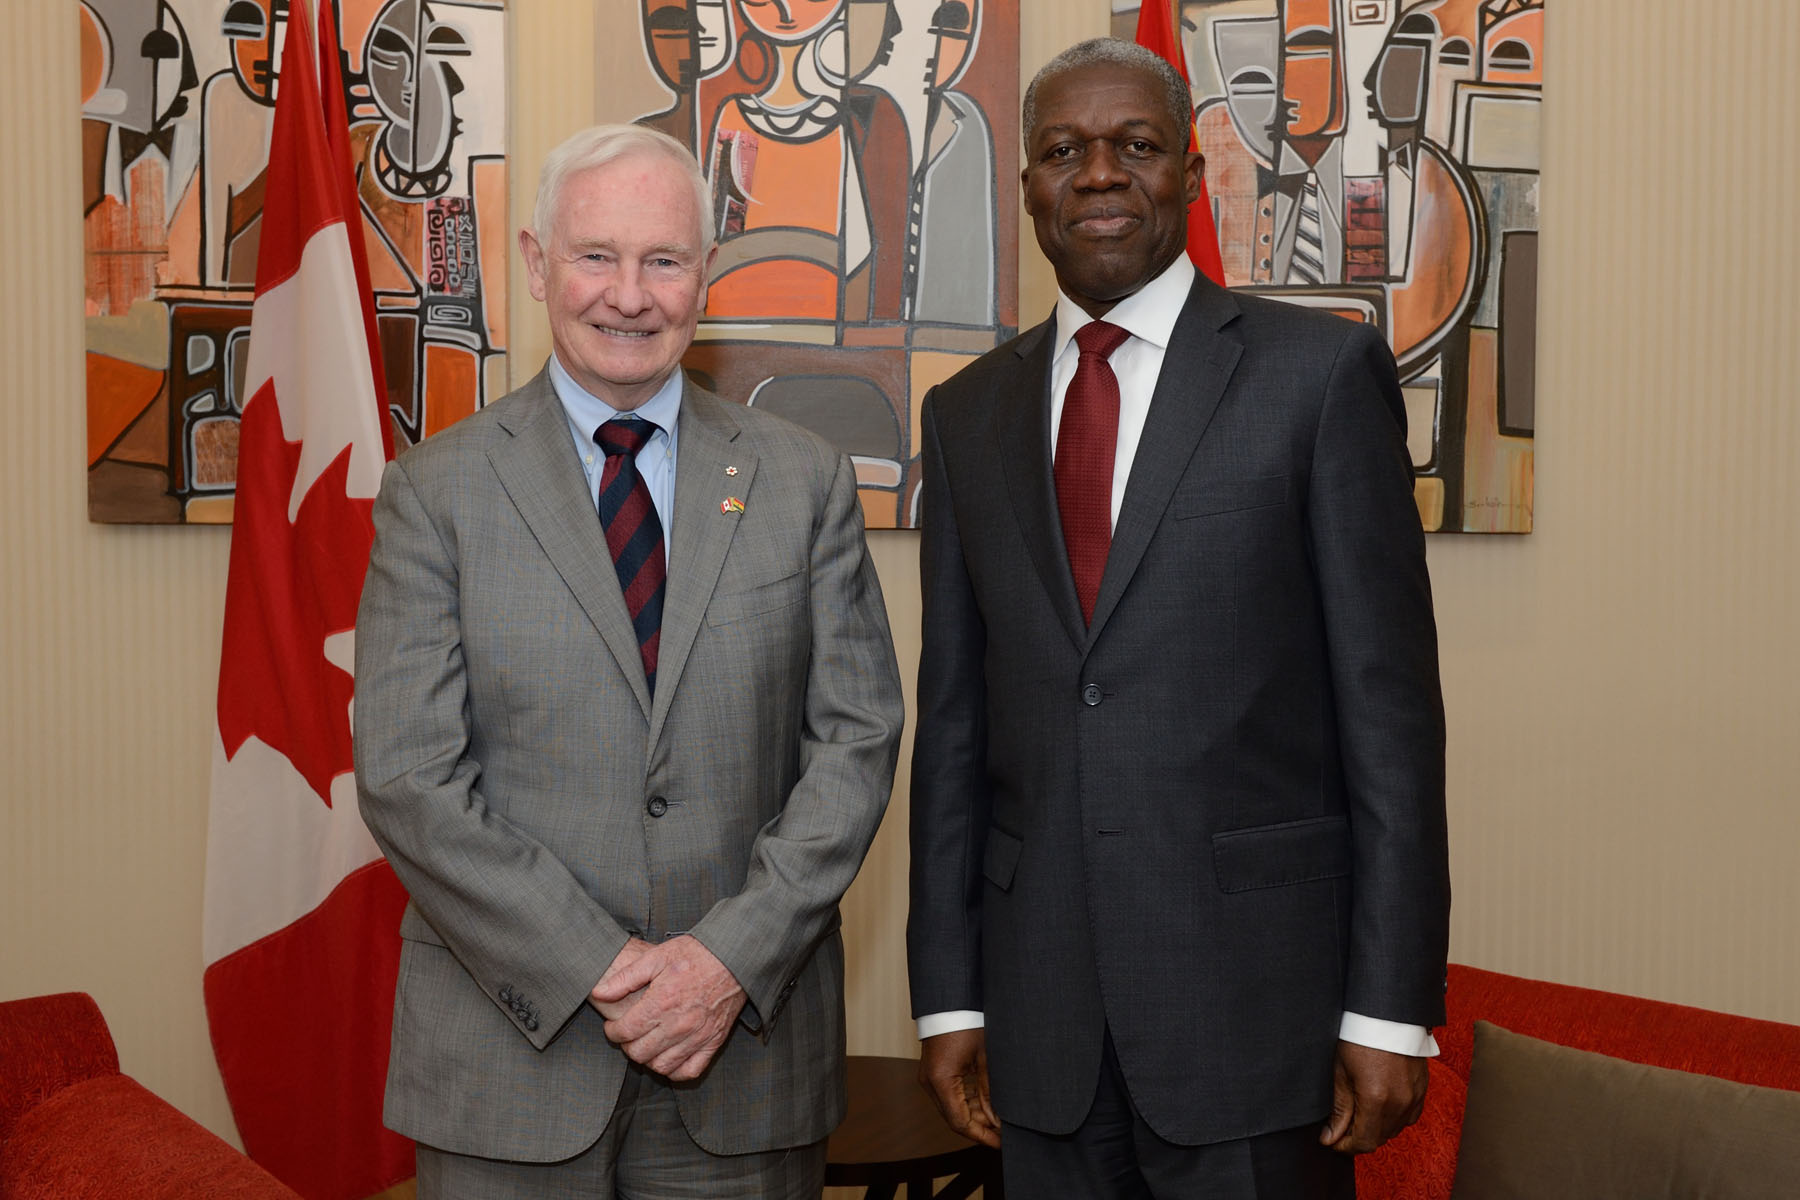 On this occasion, the Governor General met with His Excellency Kwesi Bekoe Amissah-Arthur, Vice-President of the Republic of Ghana.